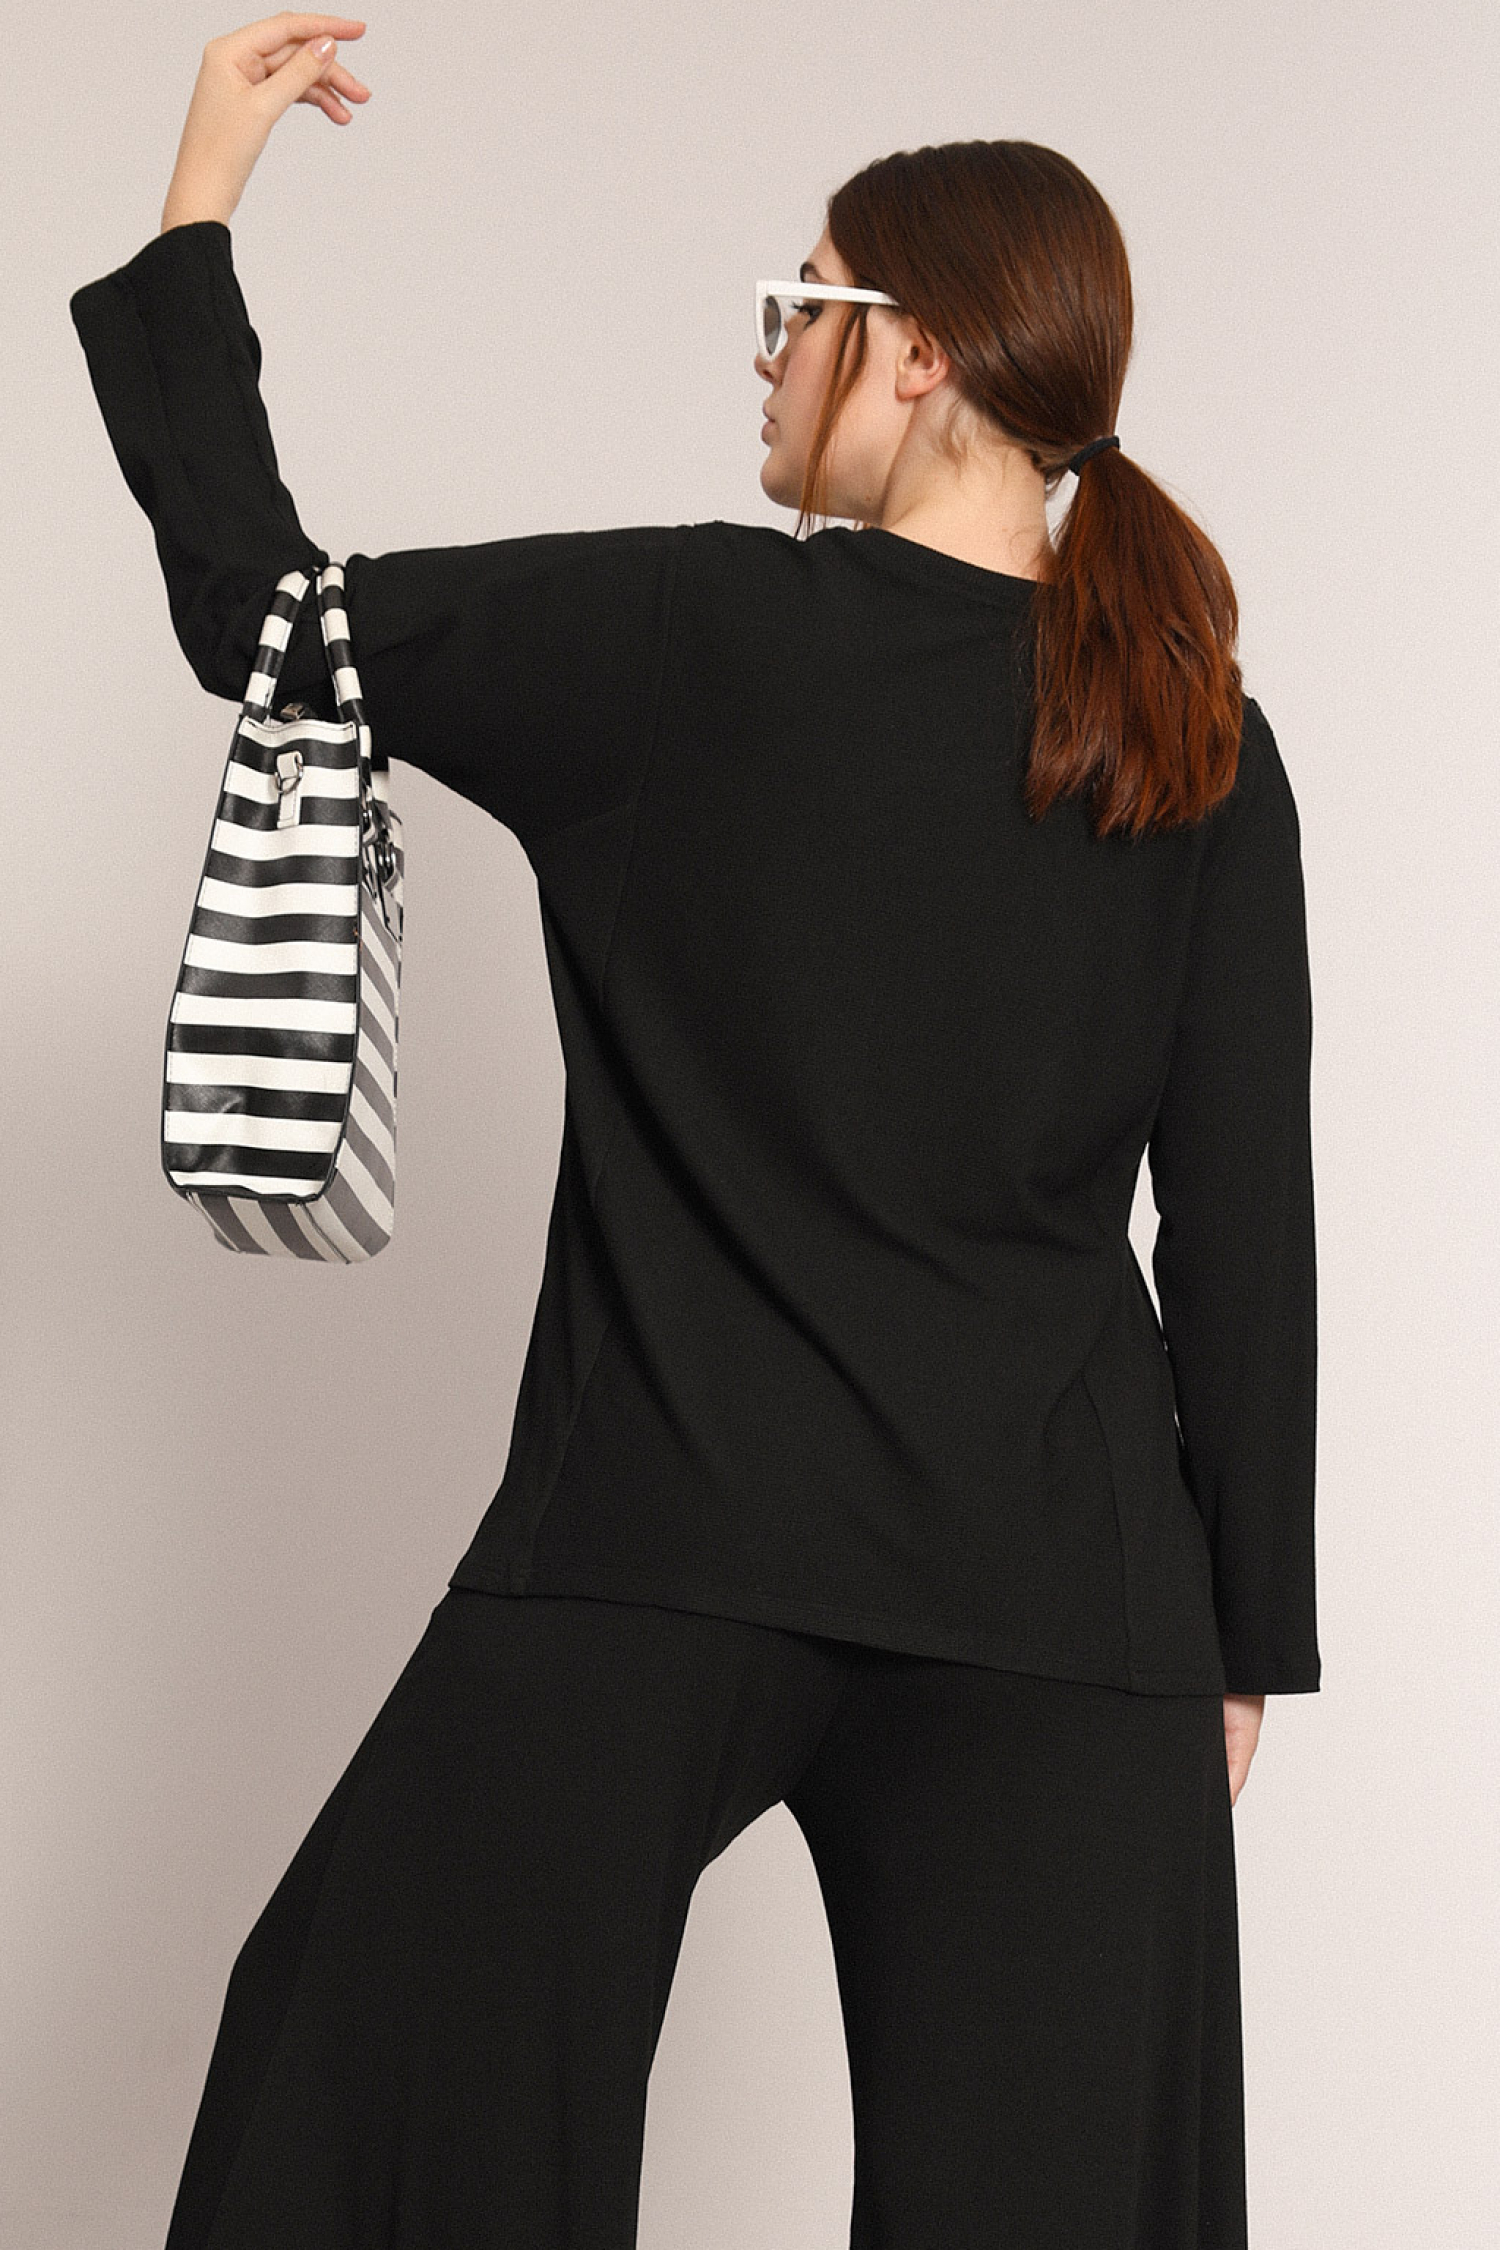 Plain knit sweater with zip (delivery October 25-30)